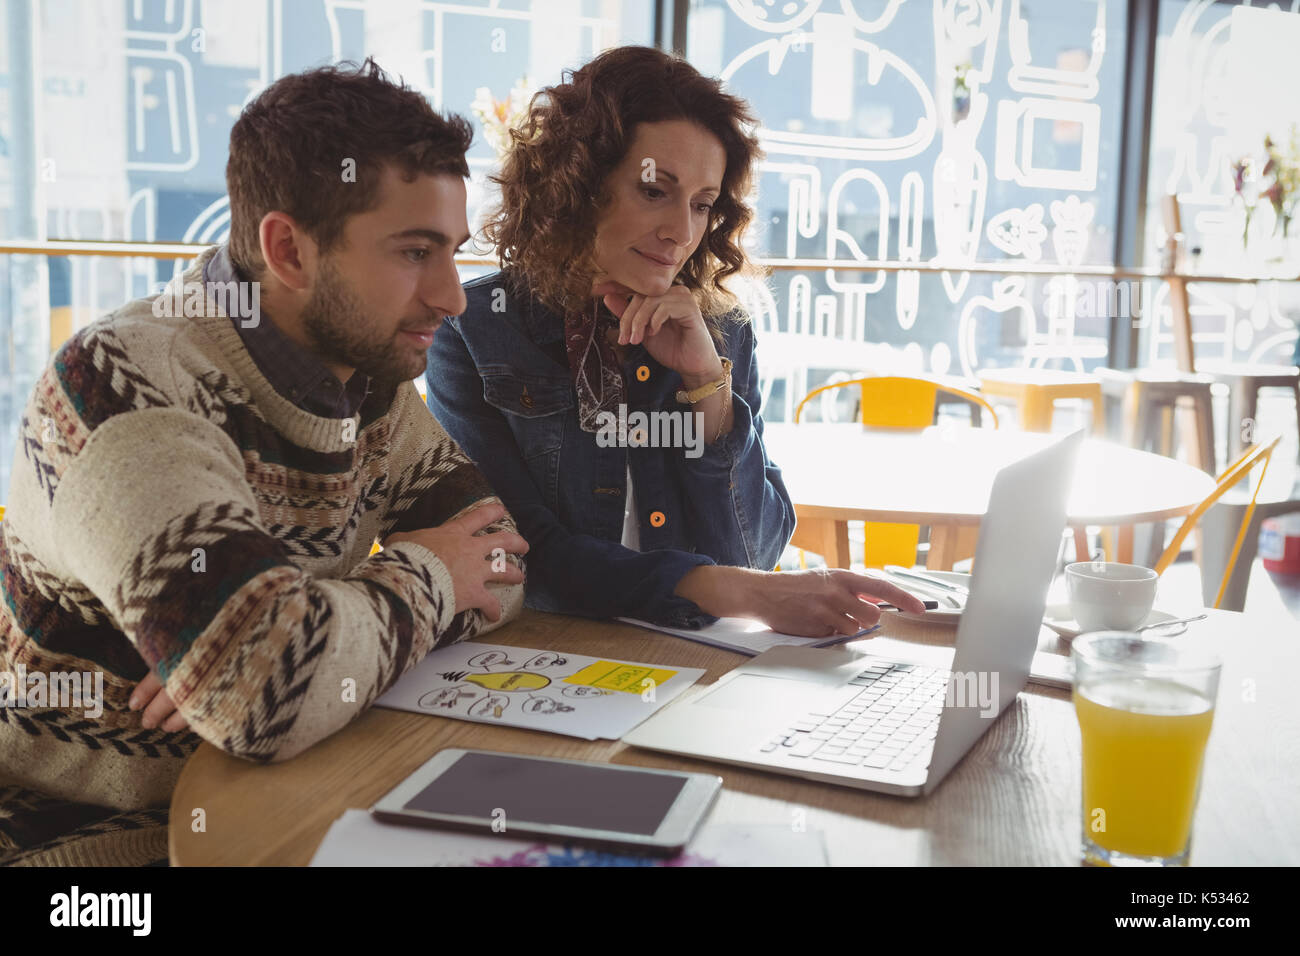 Concentrated business people using laptop at table in cafe - Stock Image